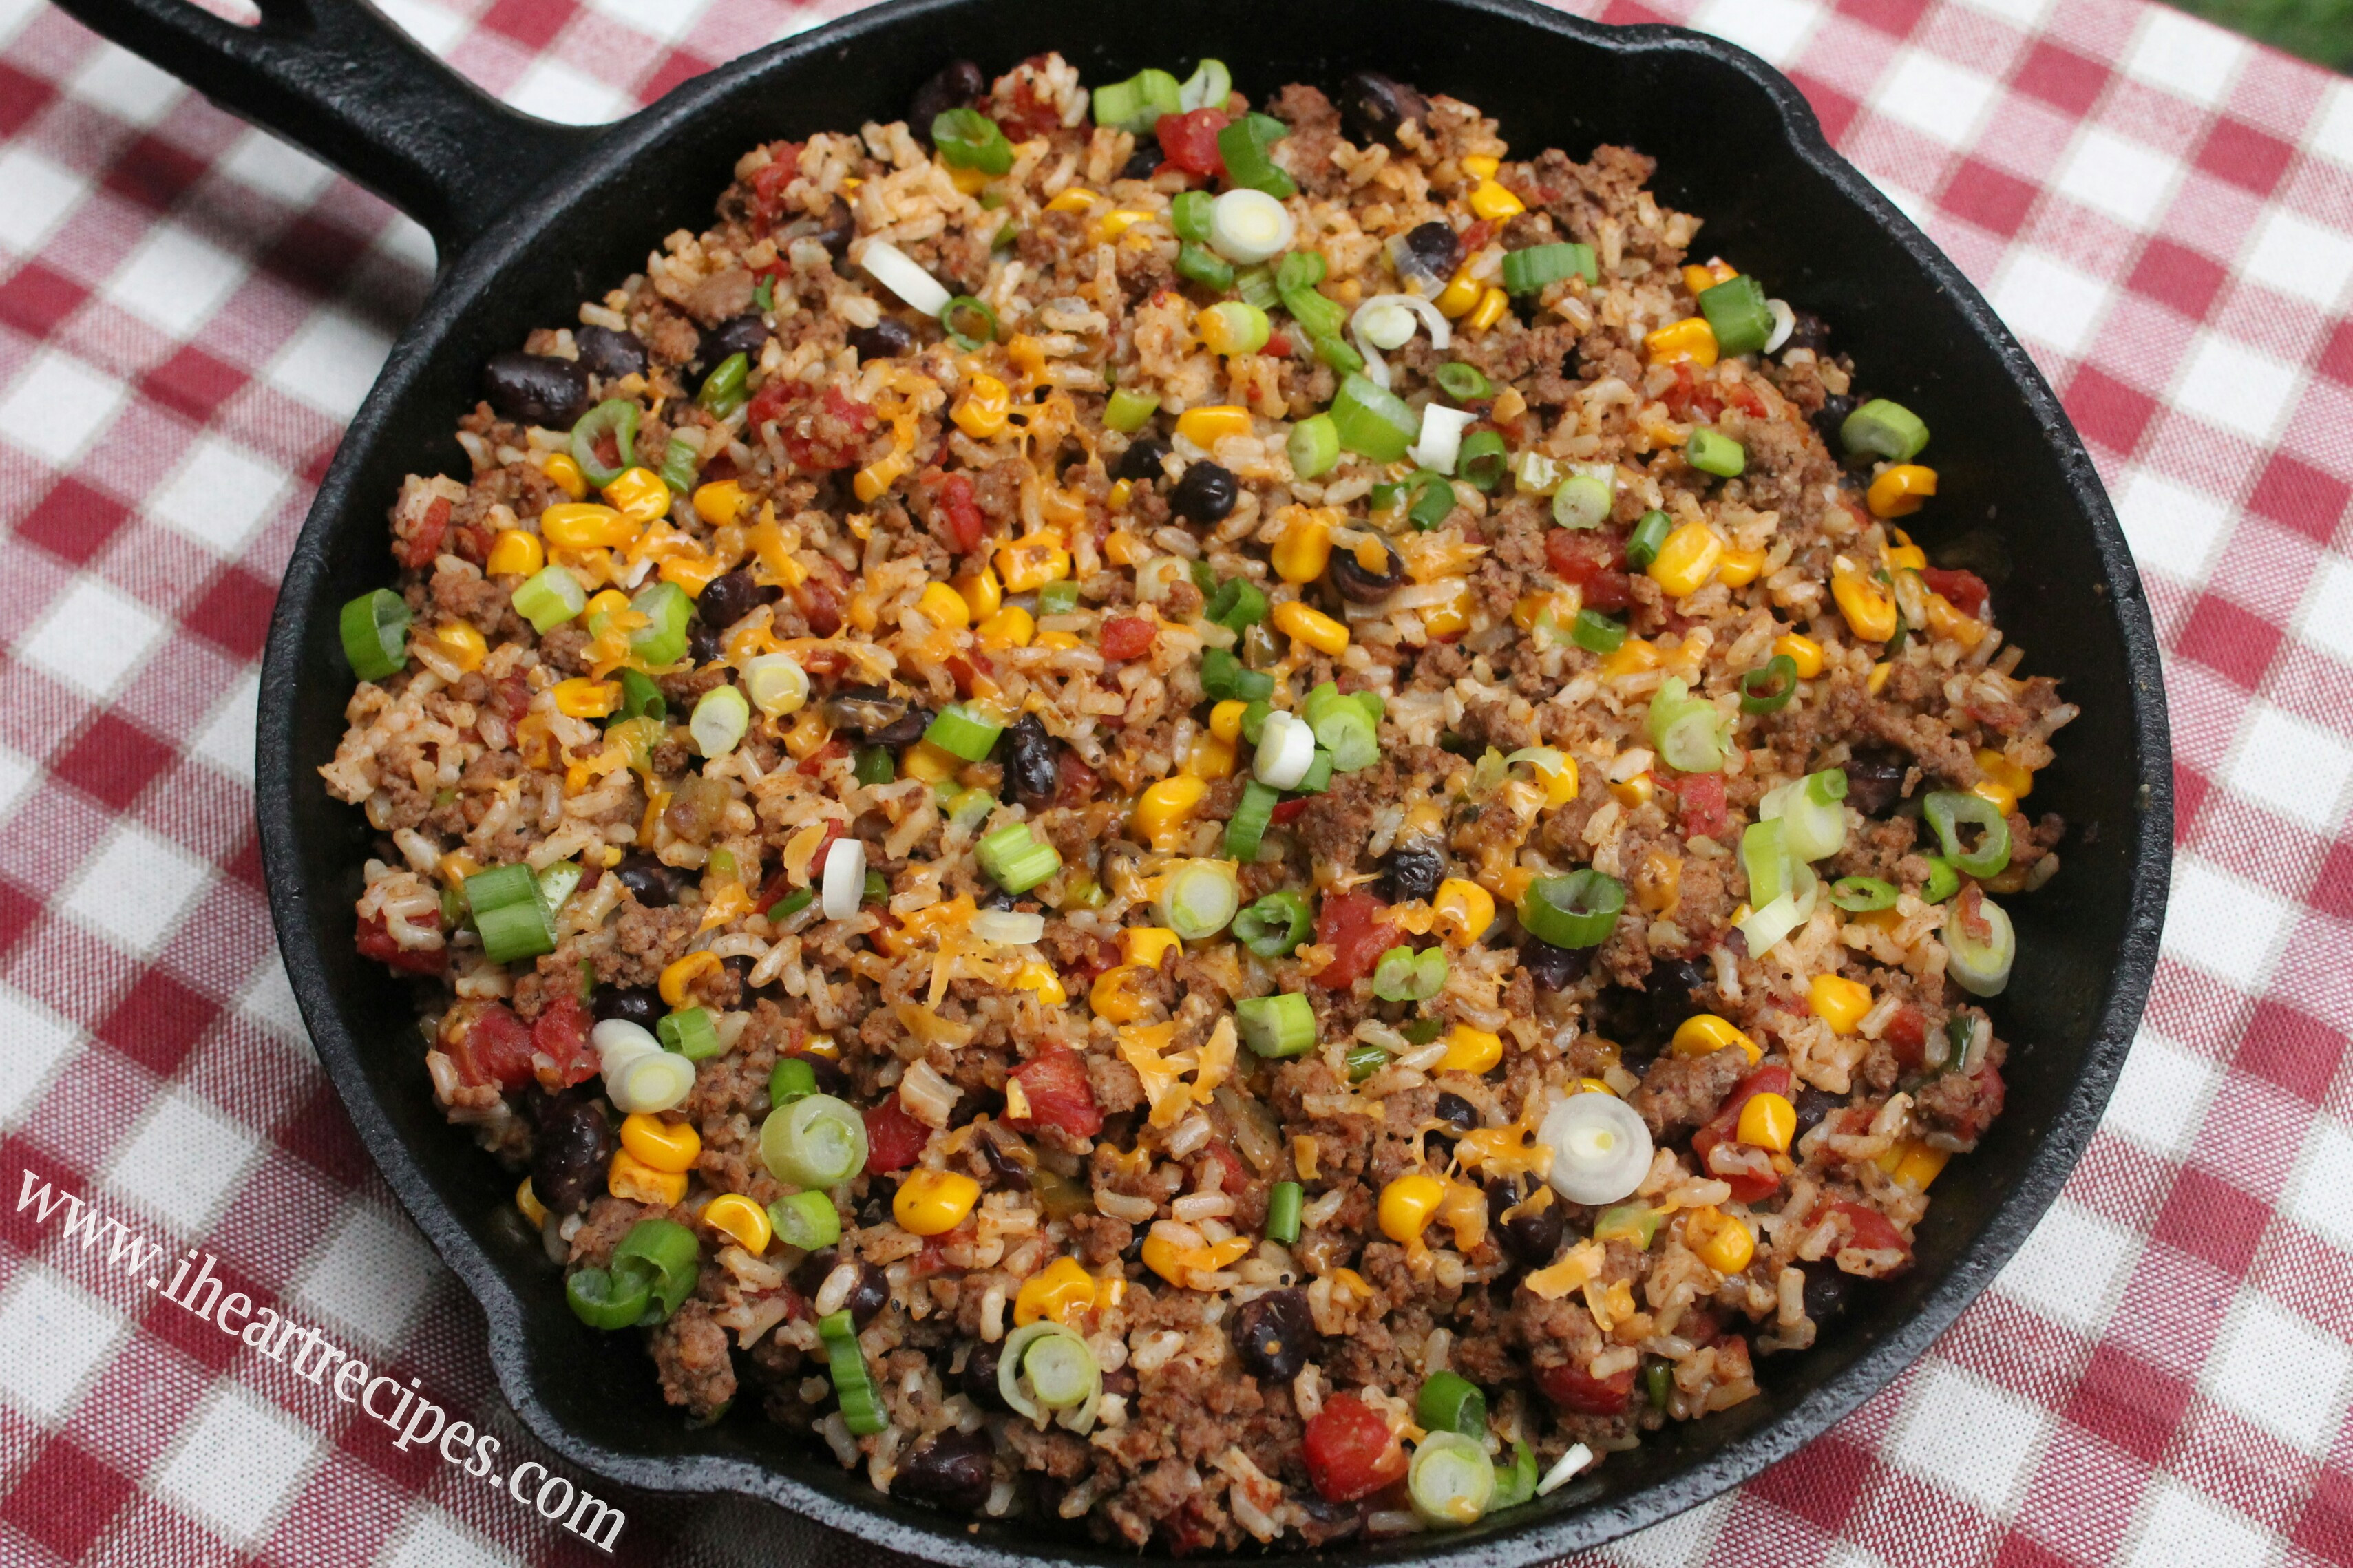 Healthy Things To Make With Ground Beef  Tex Mex Ground Beef Skillet I Heart Recipes